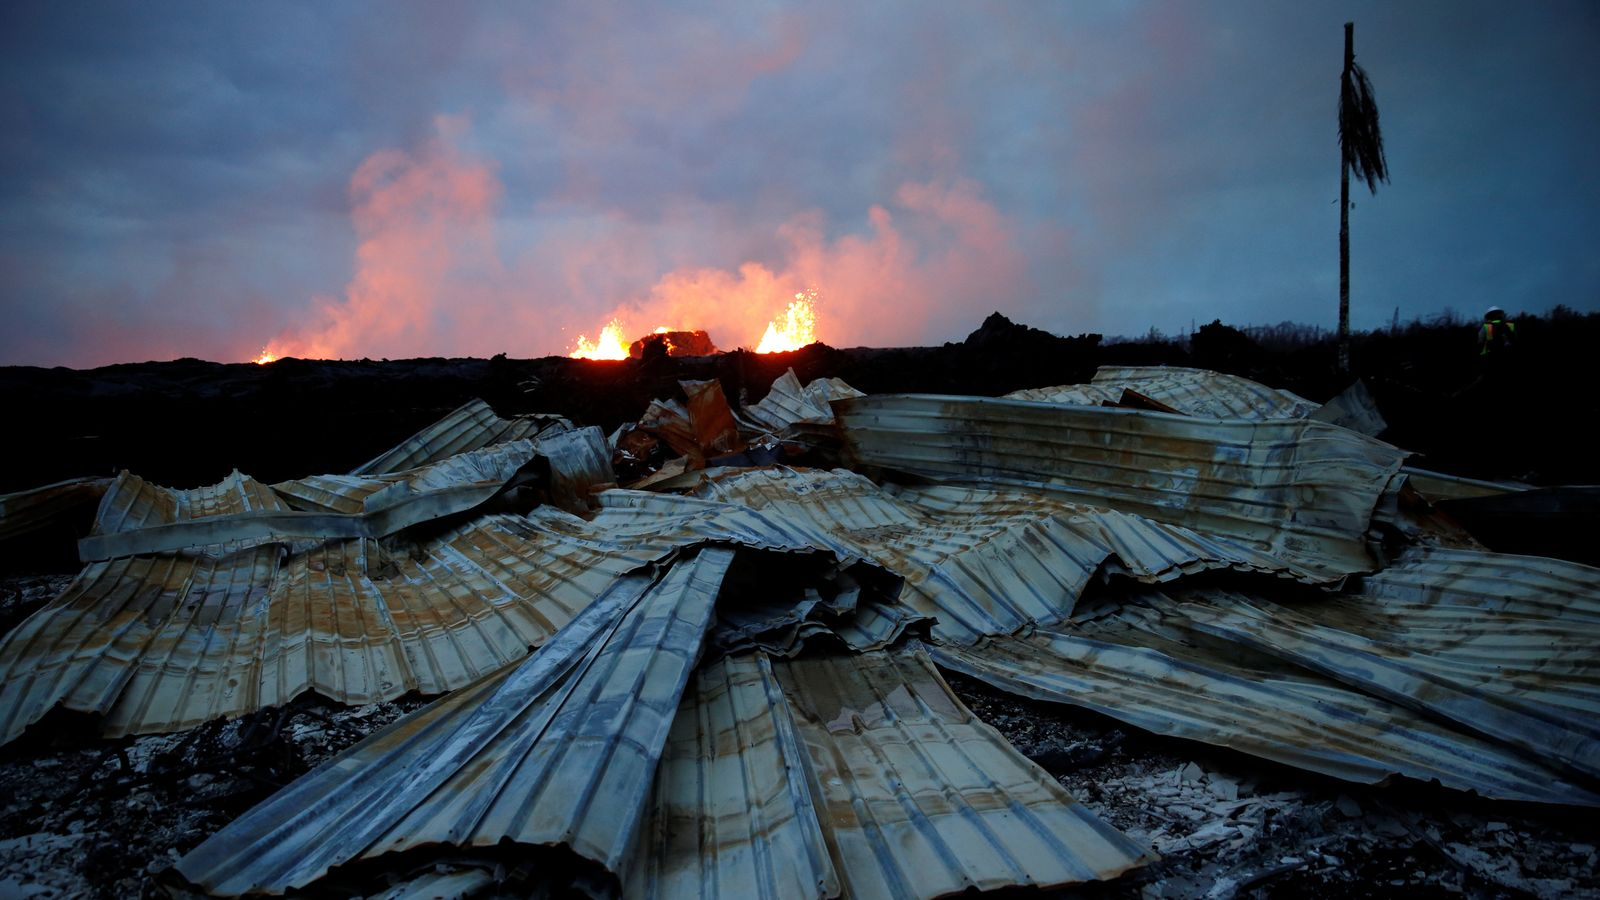 Kilauea volcano: Tide of lava destroys 82 buildings in Hawaii and hits tourism